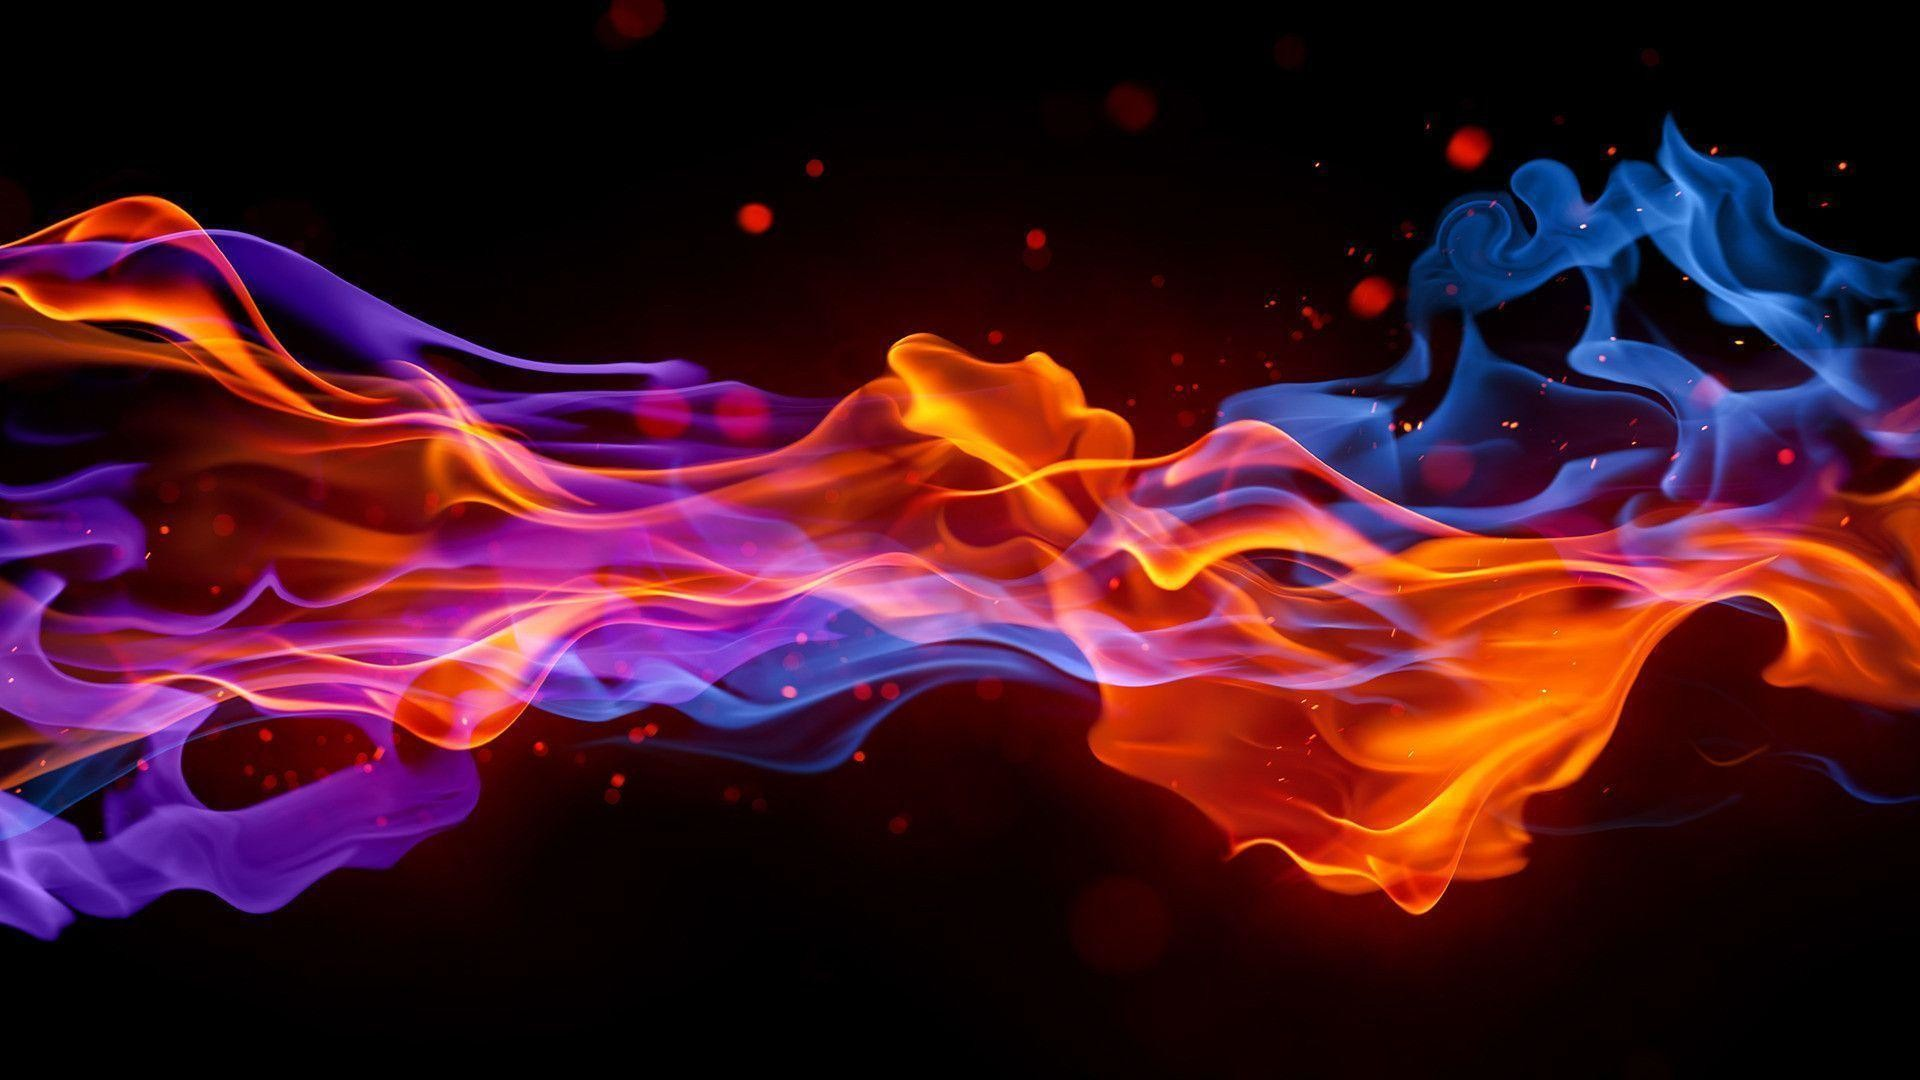 1920x1080 - Red and Blue Fire 4